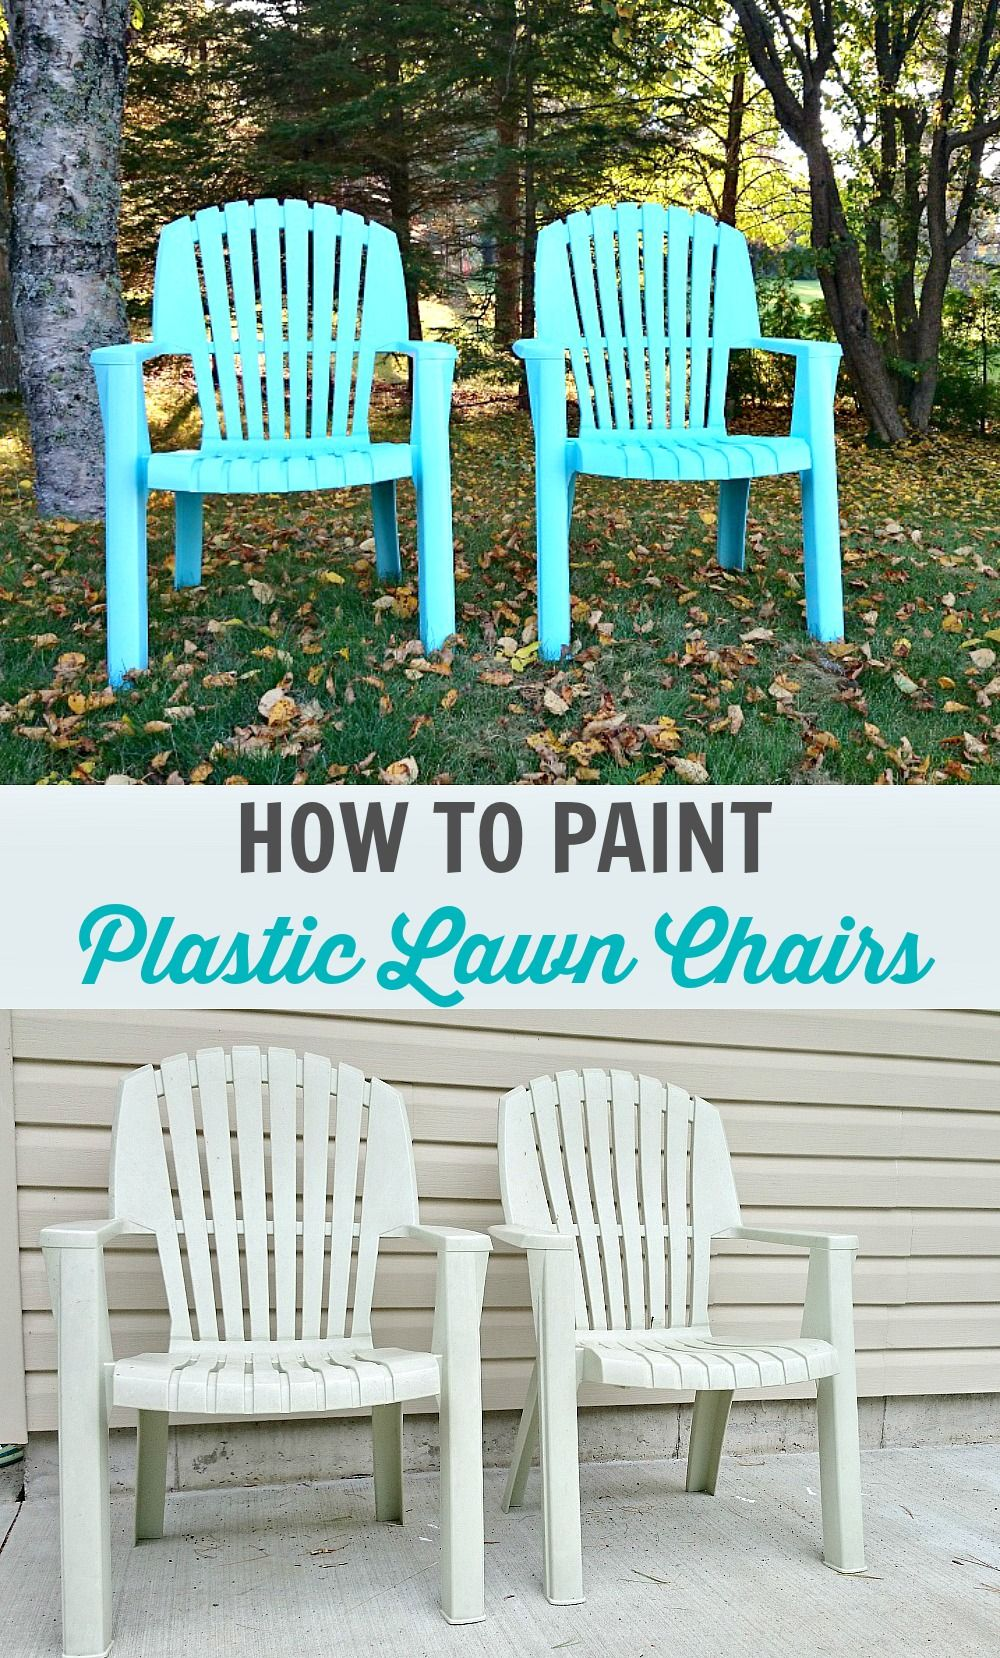 How to Spray Paint Plastic Lawn Chairs // Tips + Tricks and What Paint to  Use // by @danslelakehouse - How To Spray Paint Plastic Lawn Chairs Spray Painting Plastic